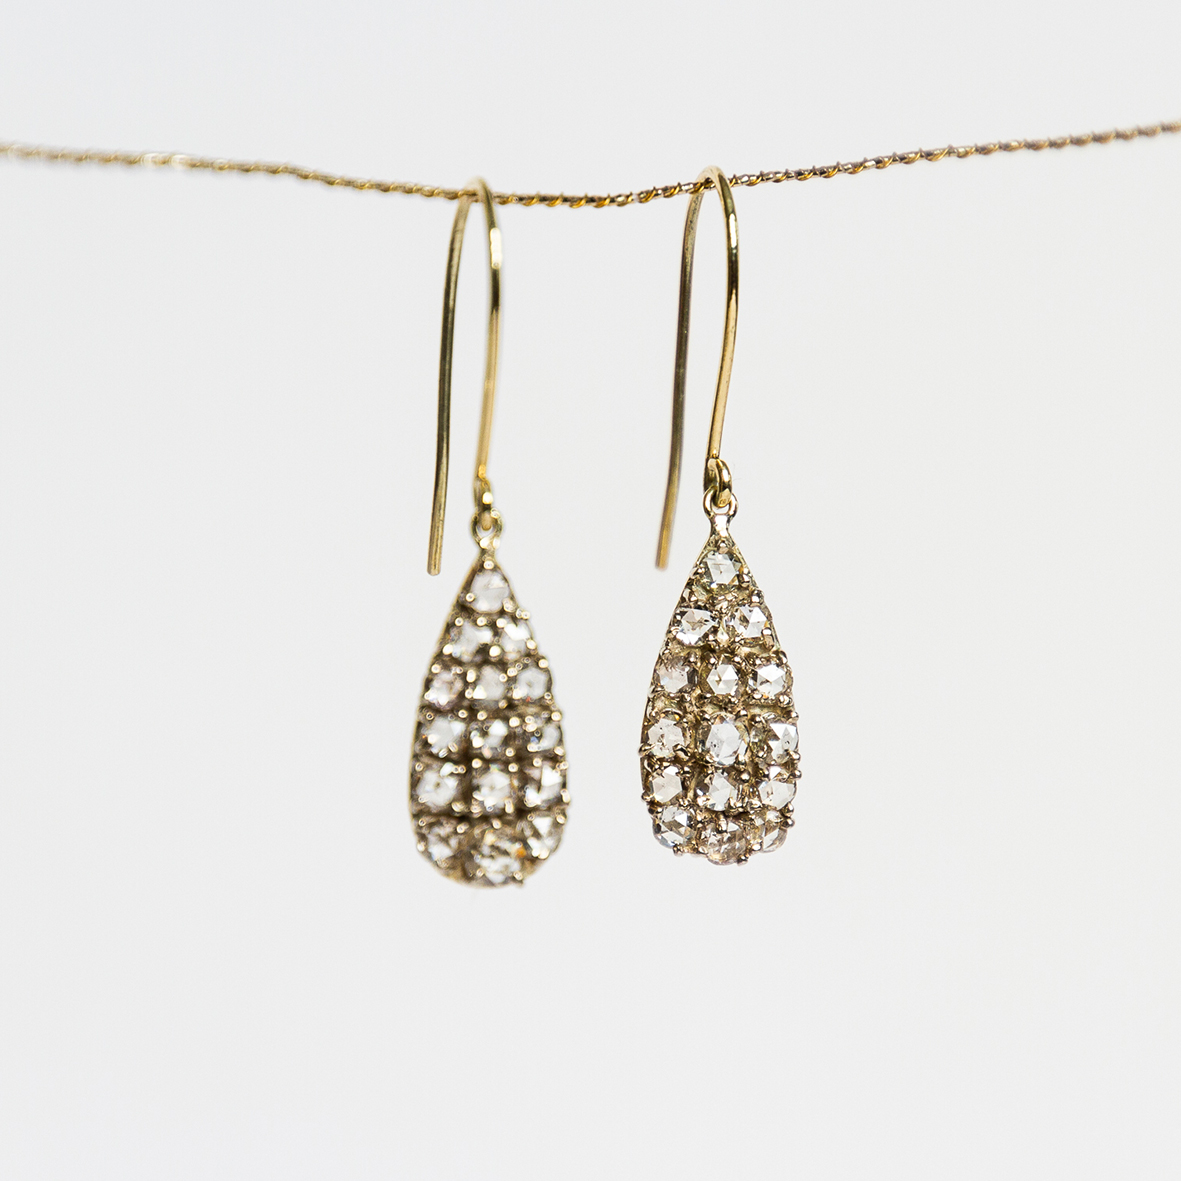 5. OONA_lotus_ficha1_drop rose-cut diamond earrings